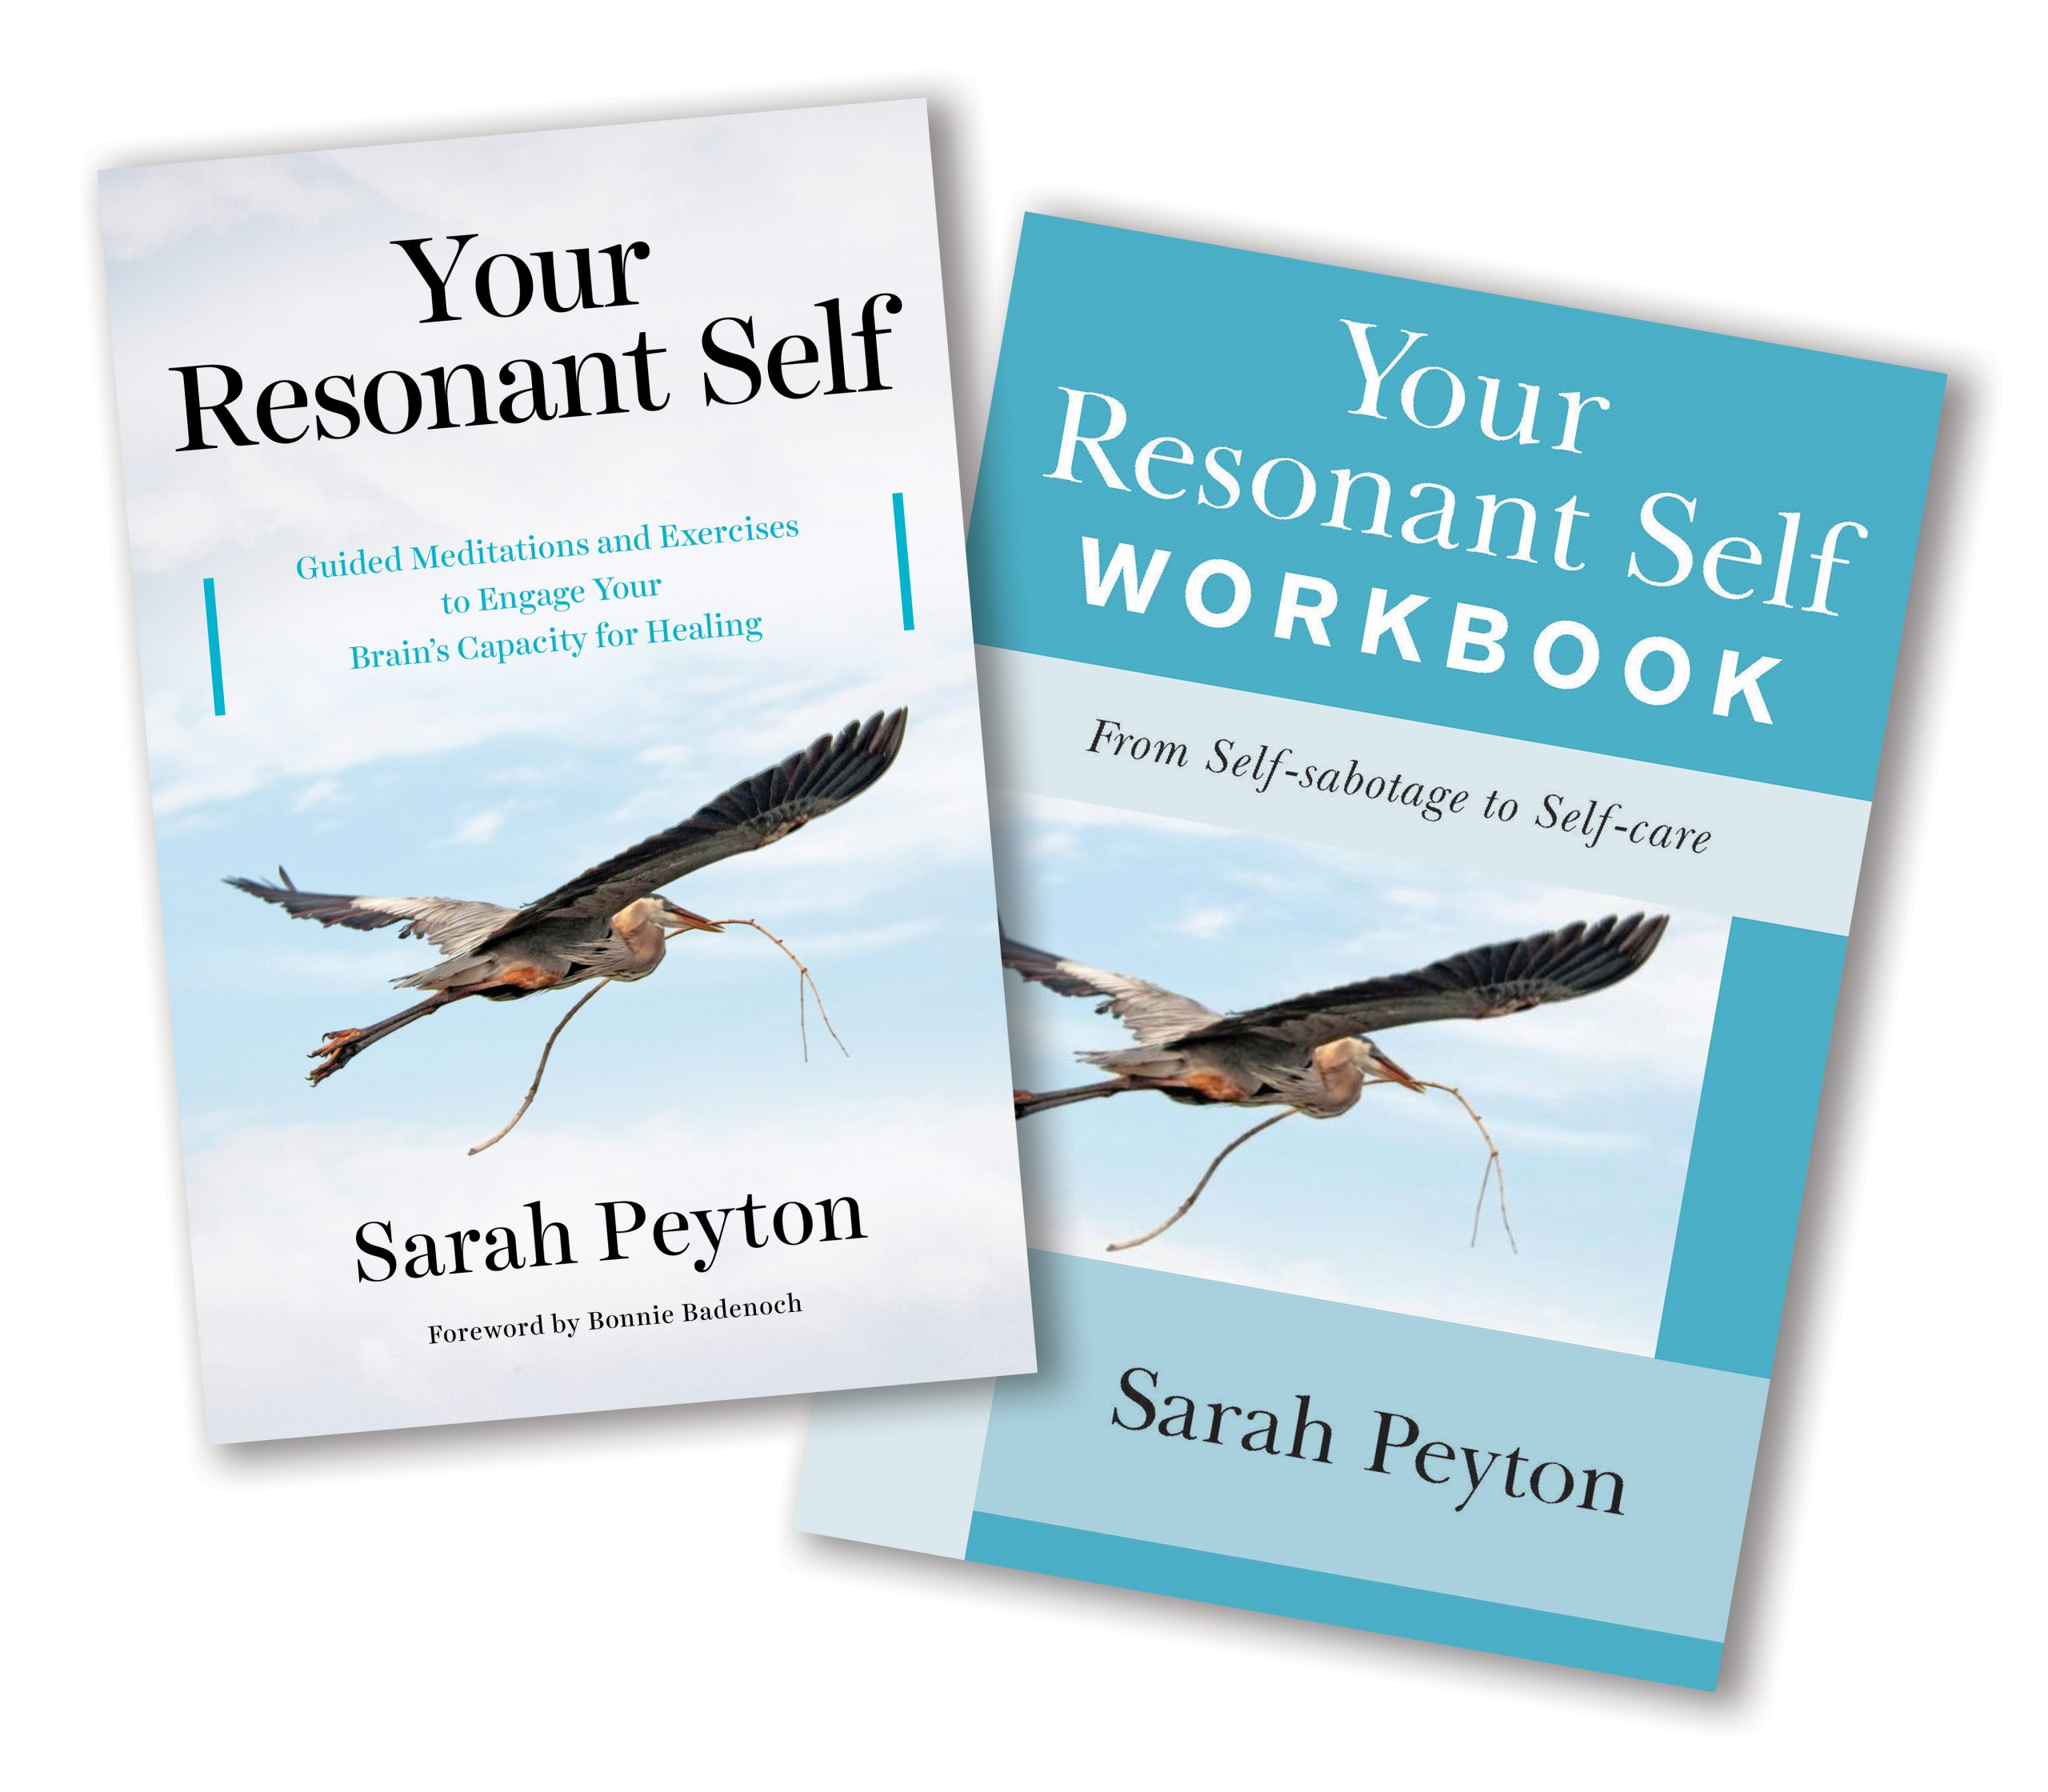 Your Resonant Self and Workbook